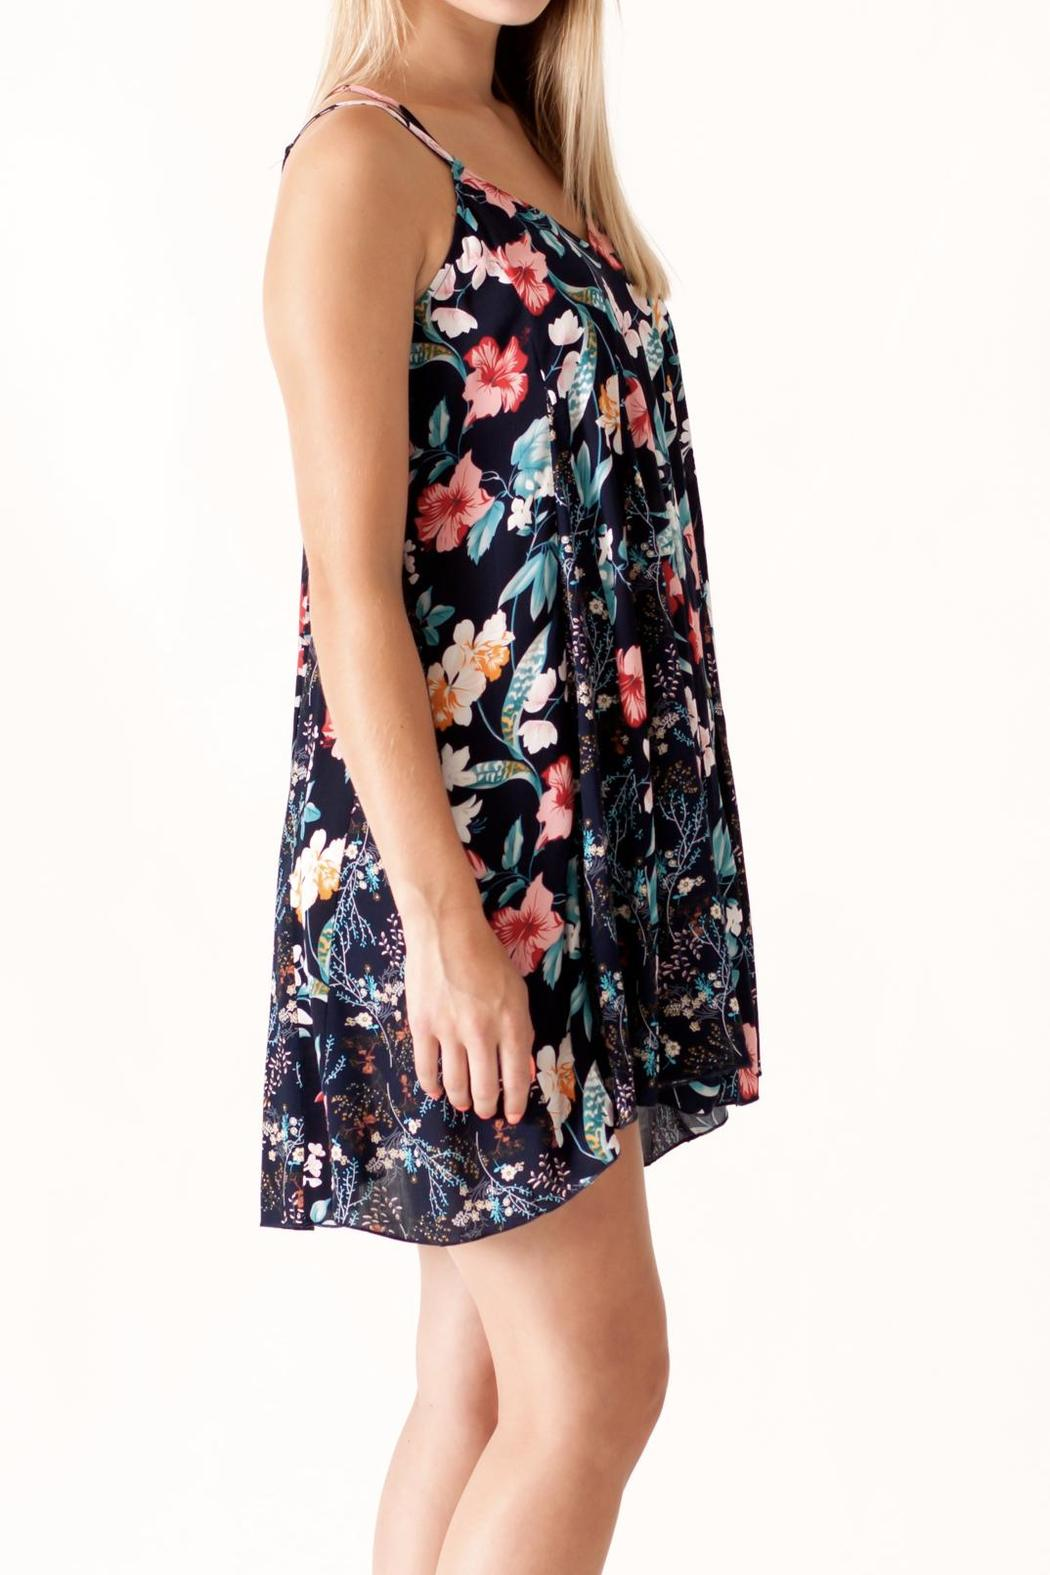 Umgee USA Floral Print Dress - Side Cropped Image